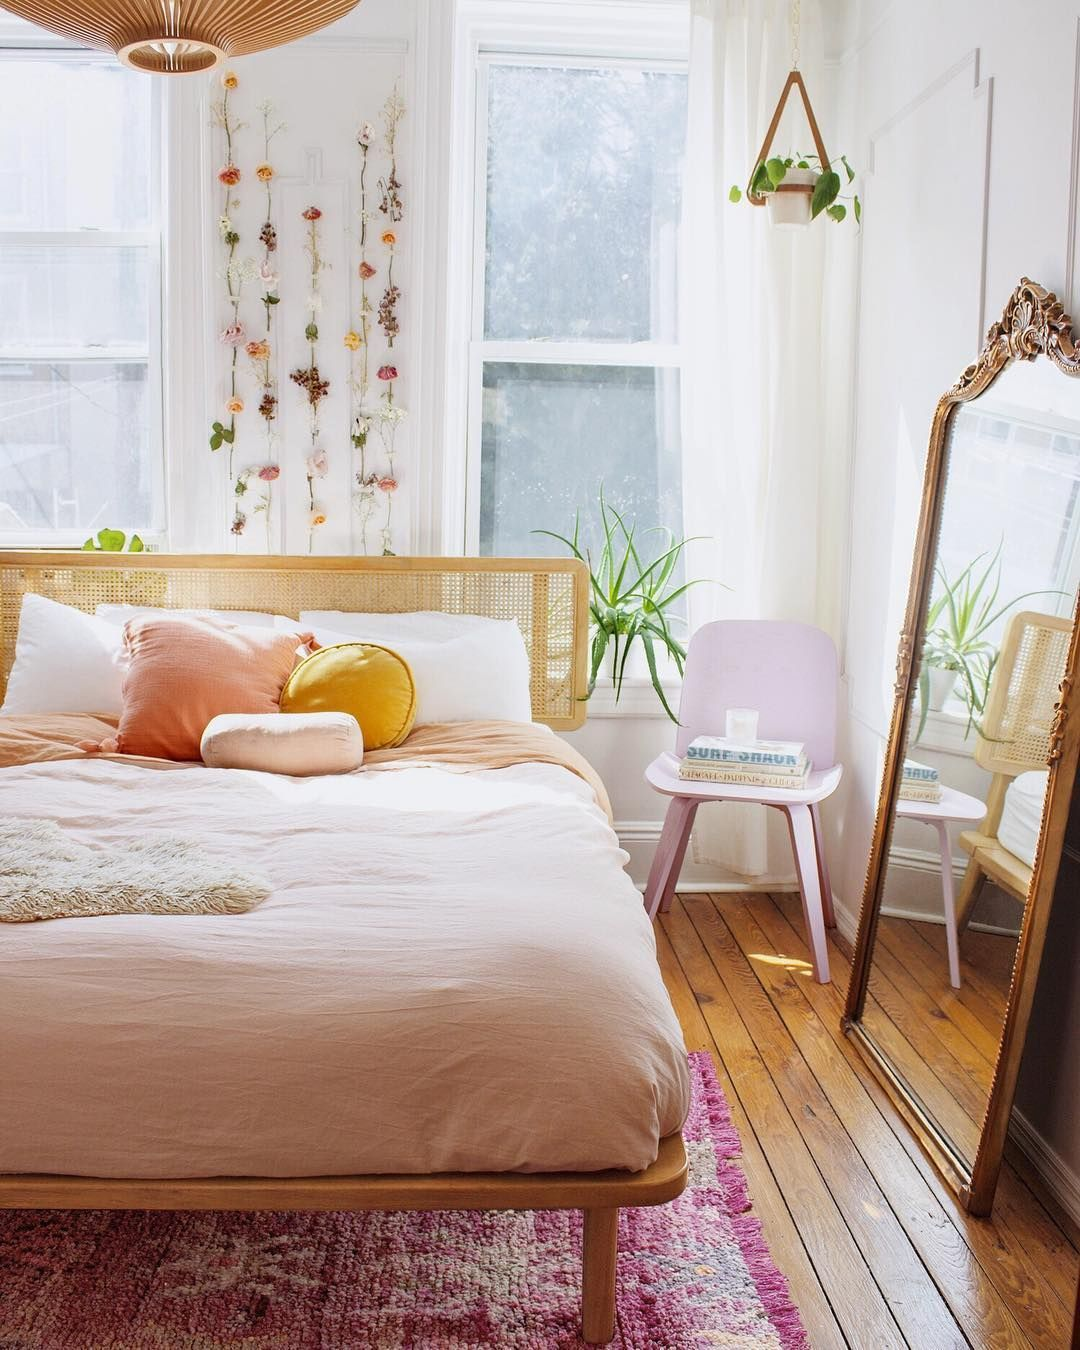 Chaise Pour Chambre à Coucher Boho In Brooklyn Bedroom Decoration Luxury Pinterest Deco